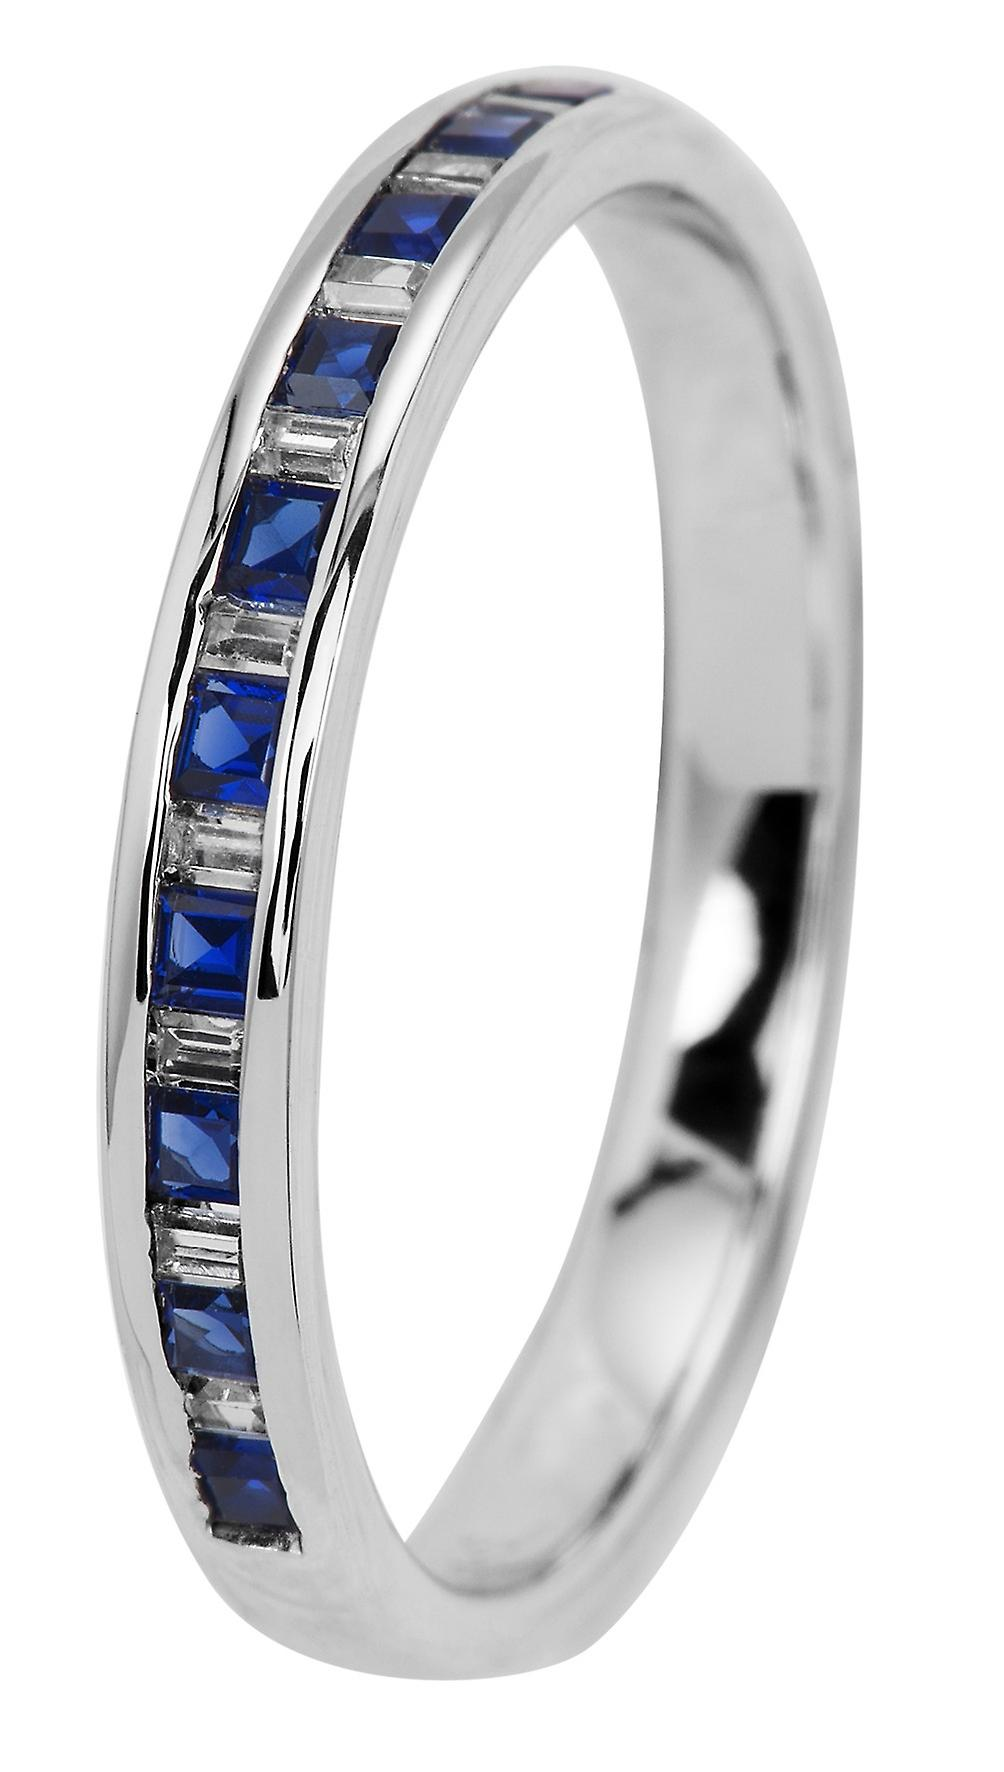 Burgmeister women's ring JBM2016-111, 925 sterling silver rhodanized, blue + white zirconia